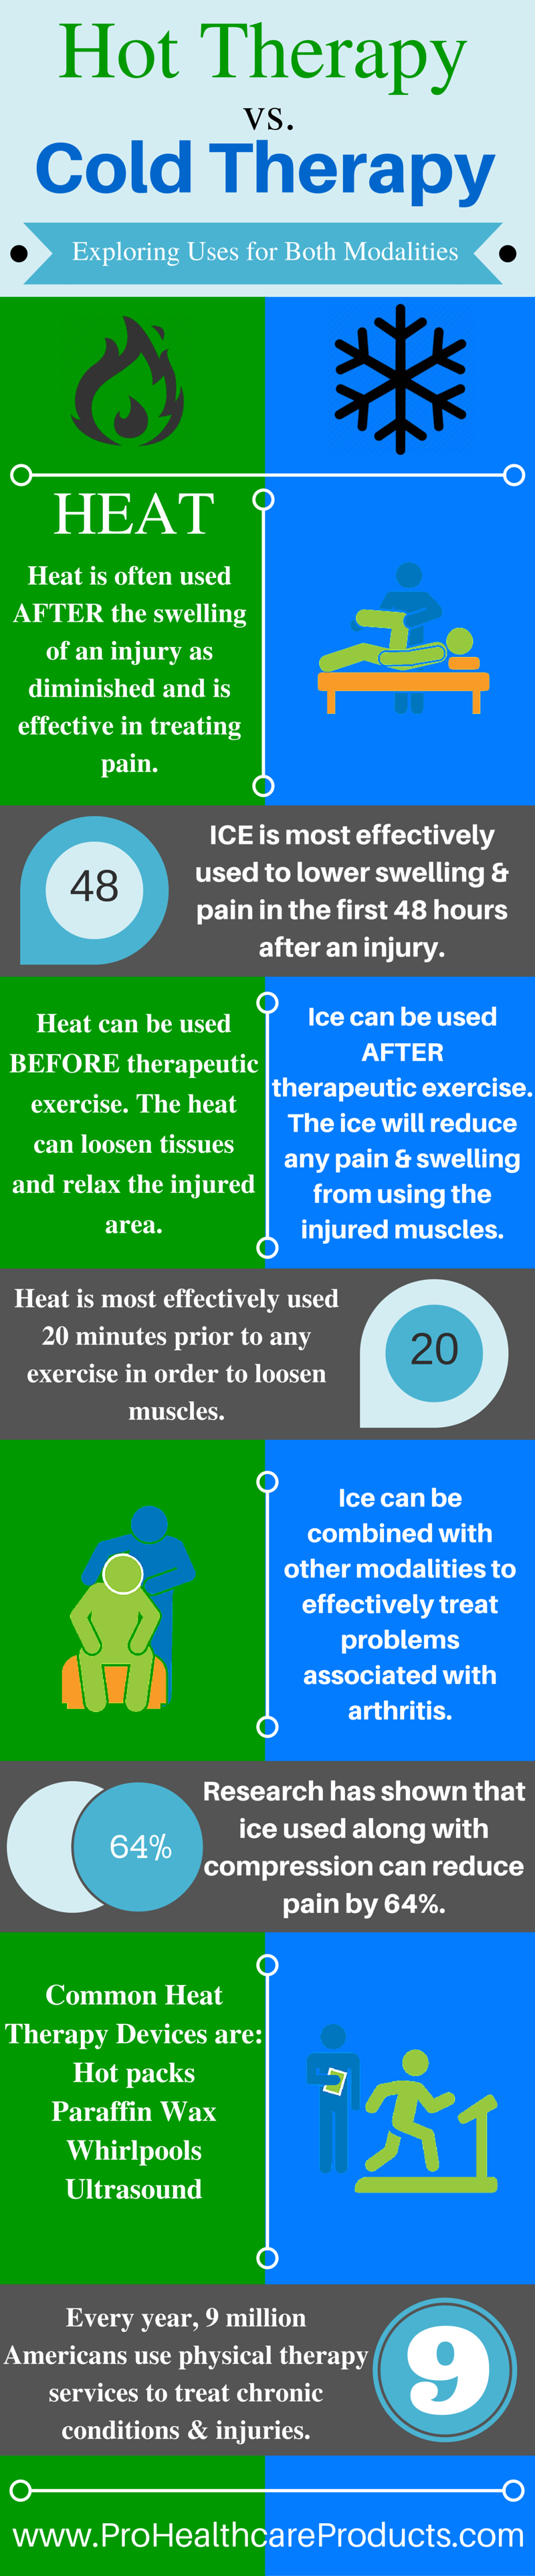 Hot Therapy vs. Cold Therapy